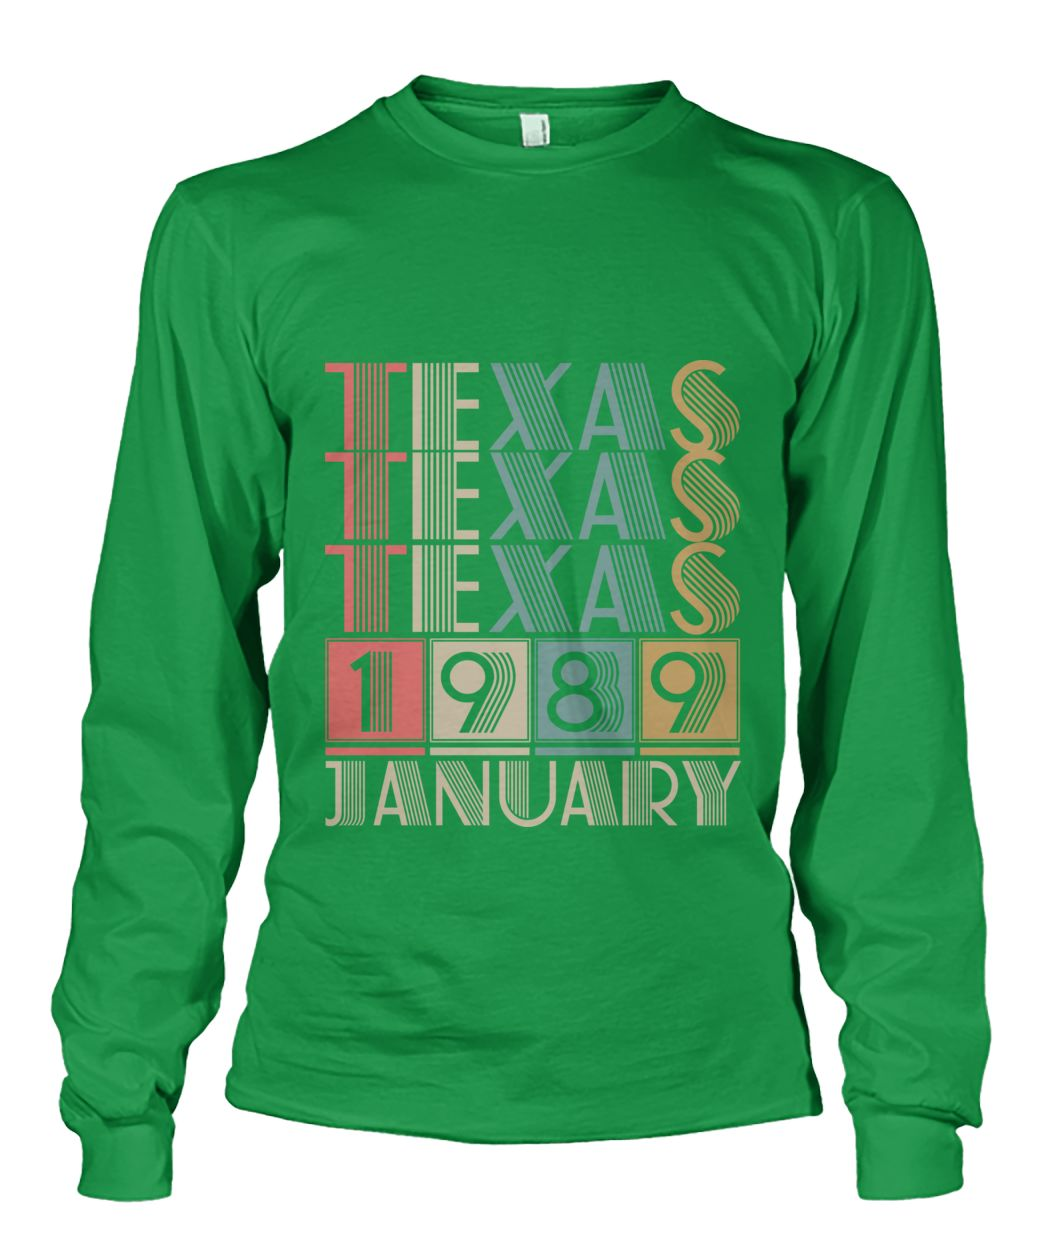 Born in Texas in January 1989 t shirt-Short Sleeves - TEEHOT.COM